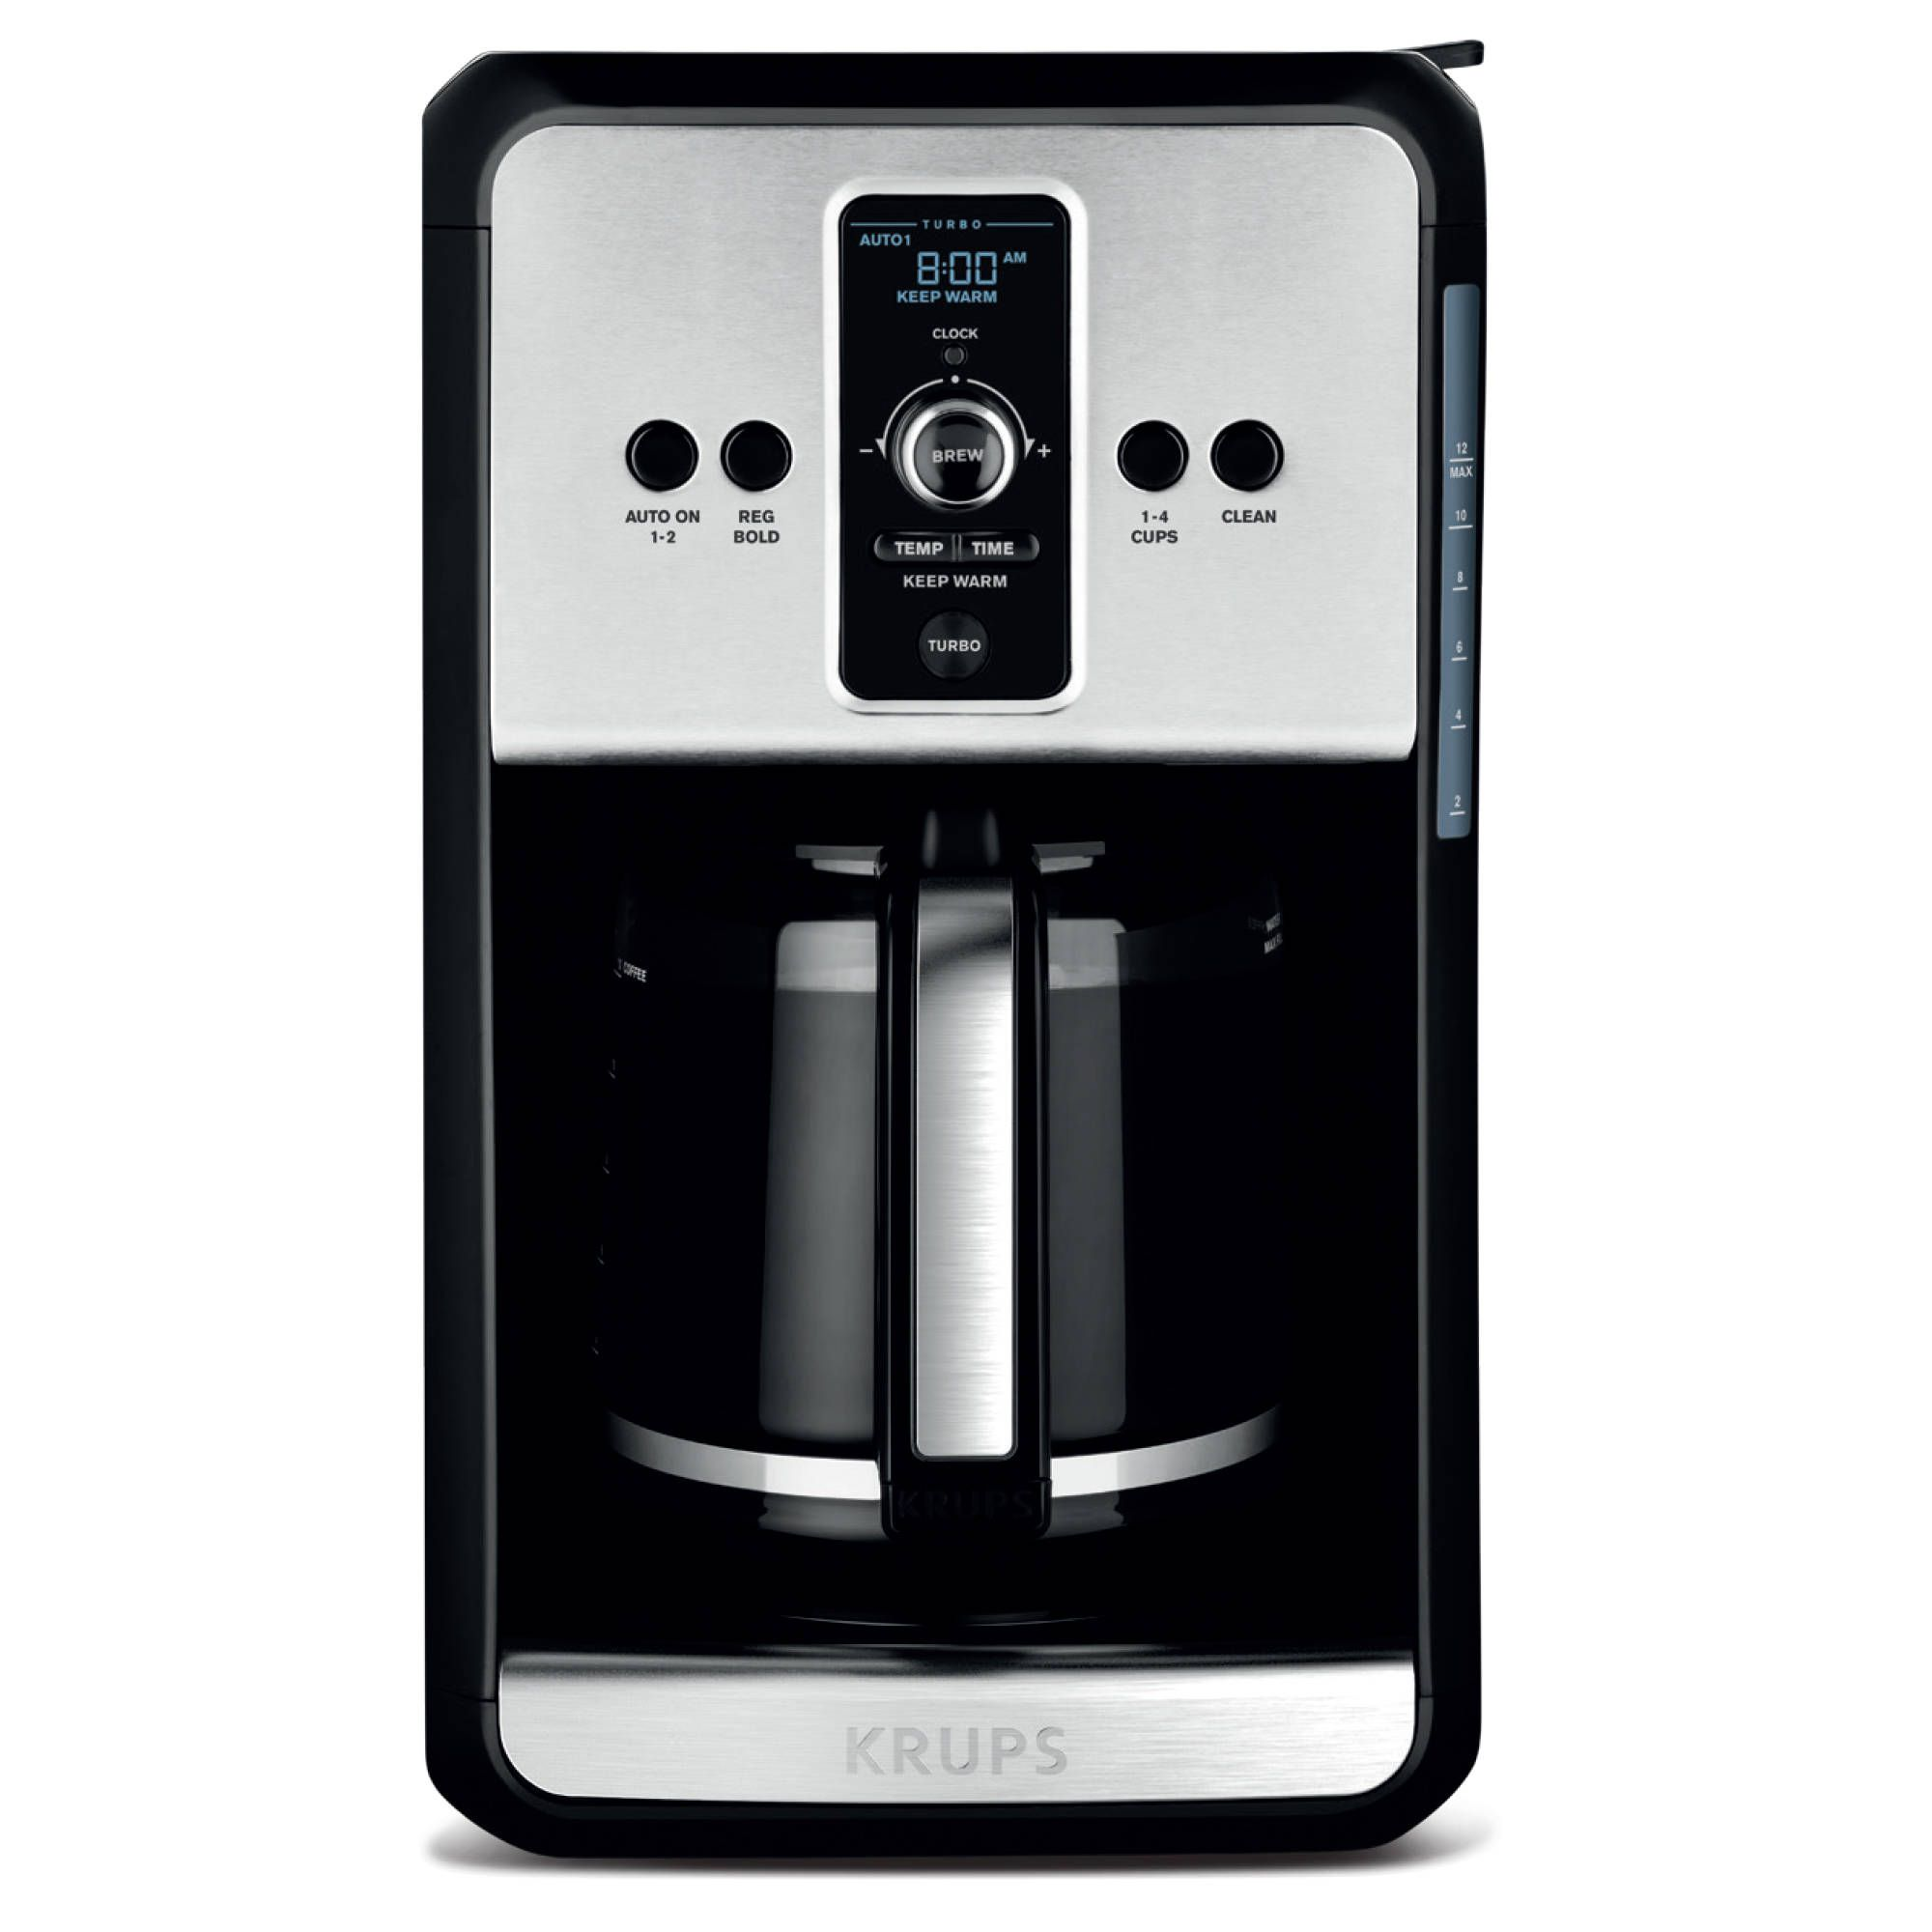 Home Coffee maker cleaning, Krups coffee maker, Thermal